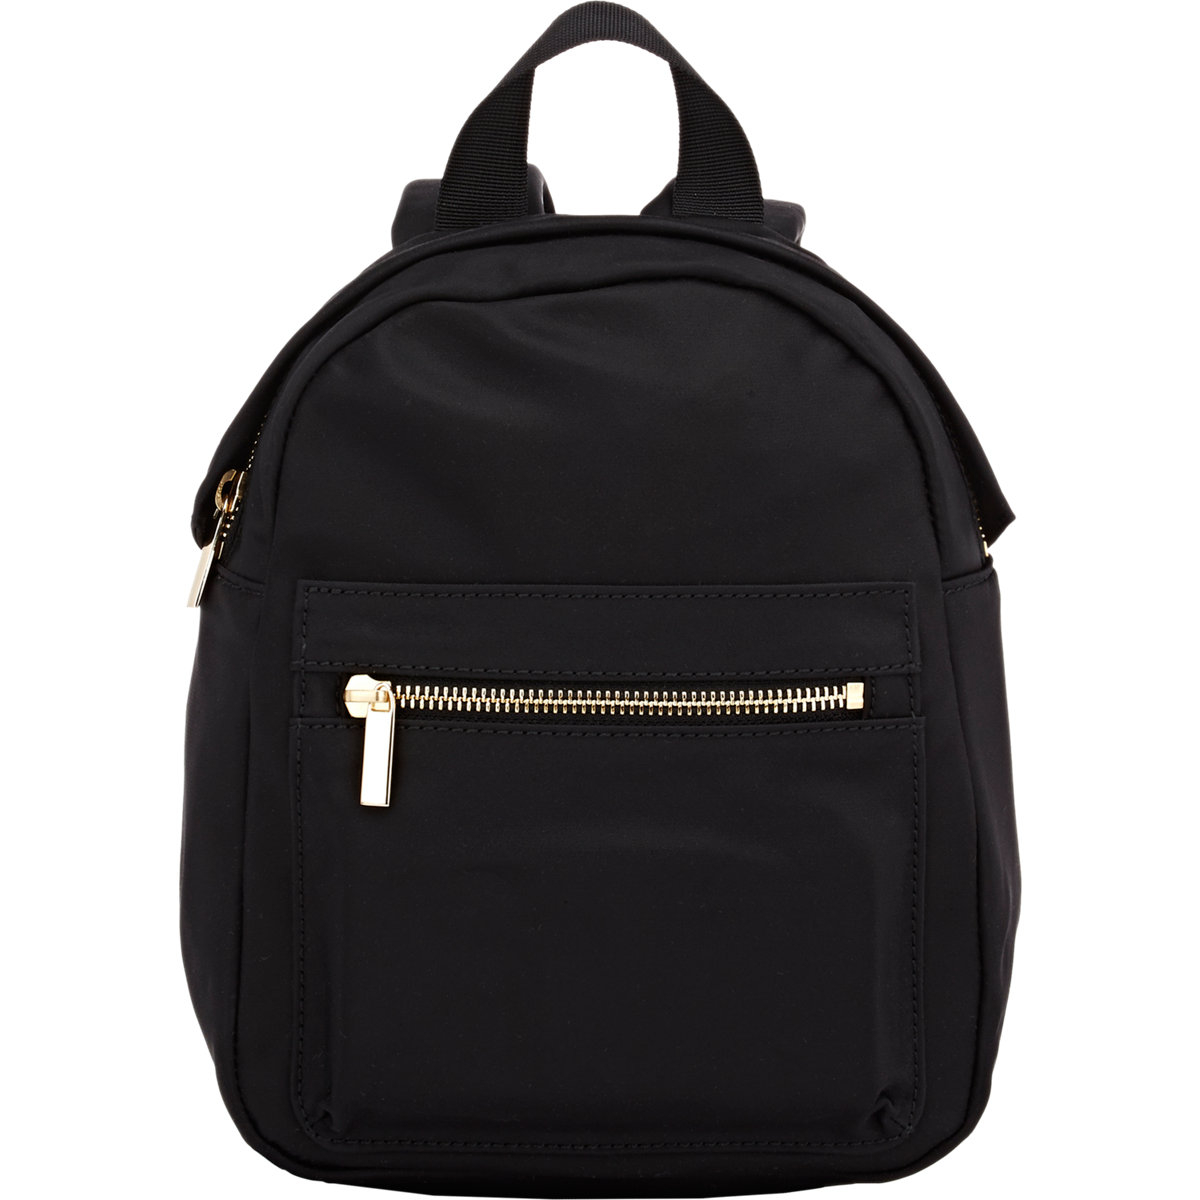 barneys new york grace mini backpack black in black lyst. Black Bedroom Furniture Sets. Home Design Ideas